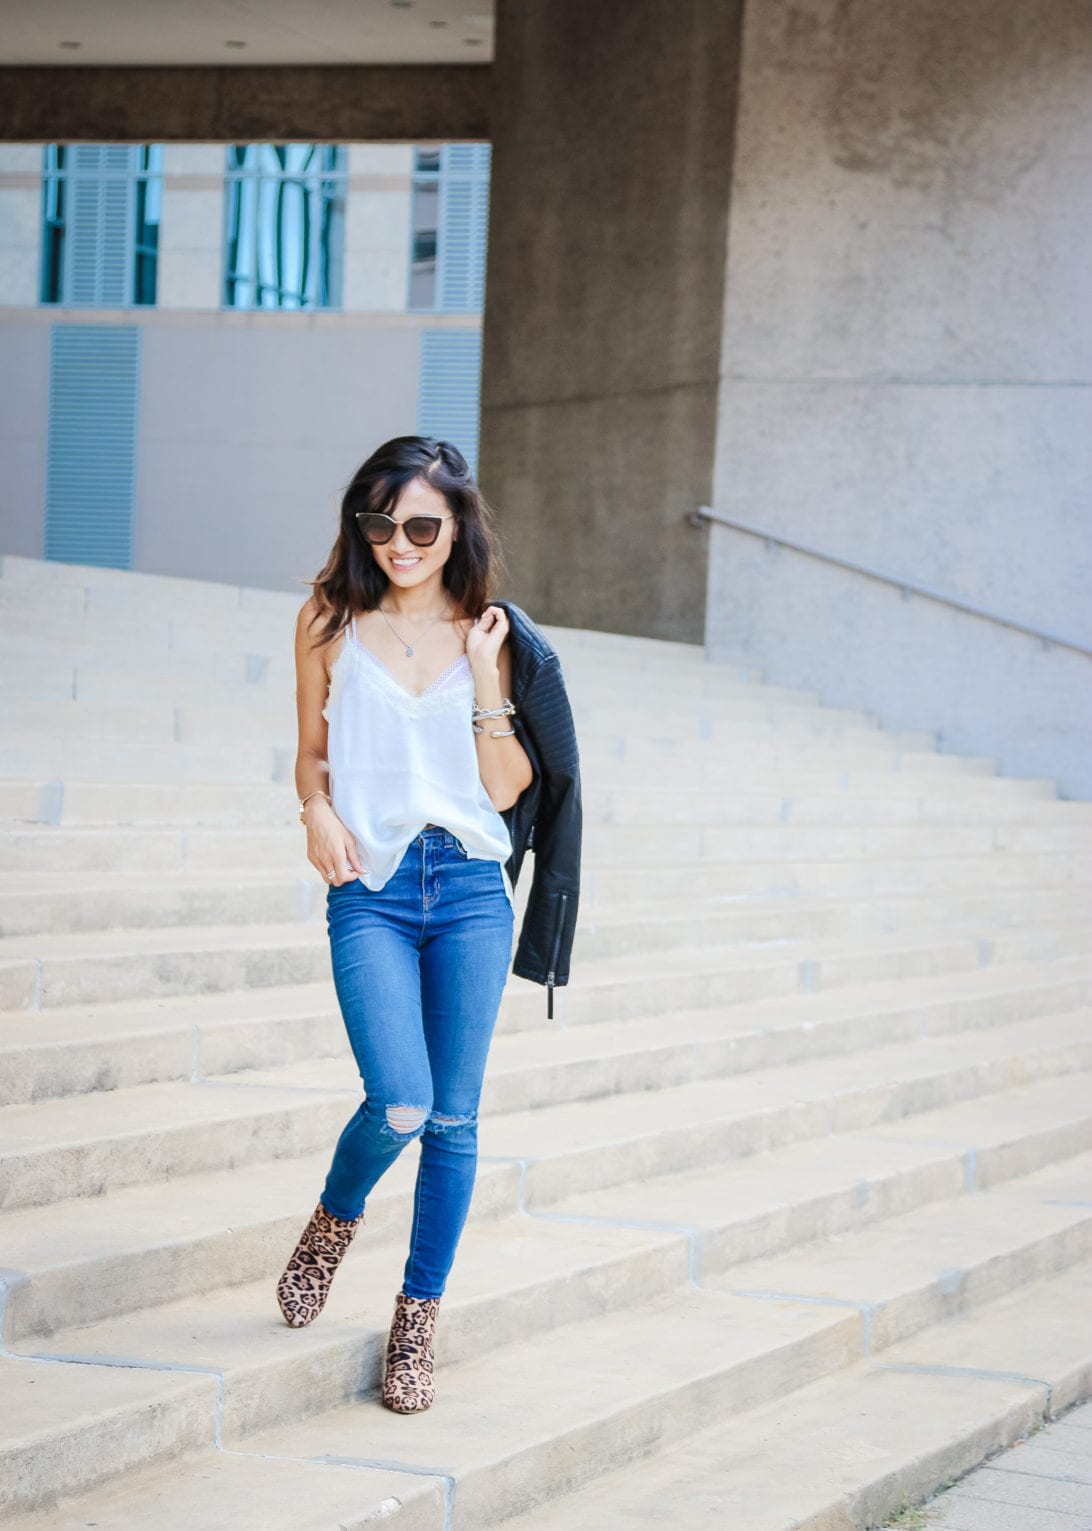 what to wear after Labor Day, Labor Day outfit, leather moto jacket, black leather jacket, moto jacket, ripped jeans, leopard booties, Prada sunglasses, statement booties, fall outfit